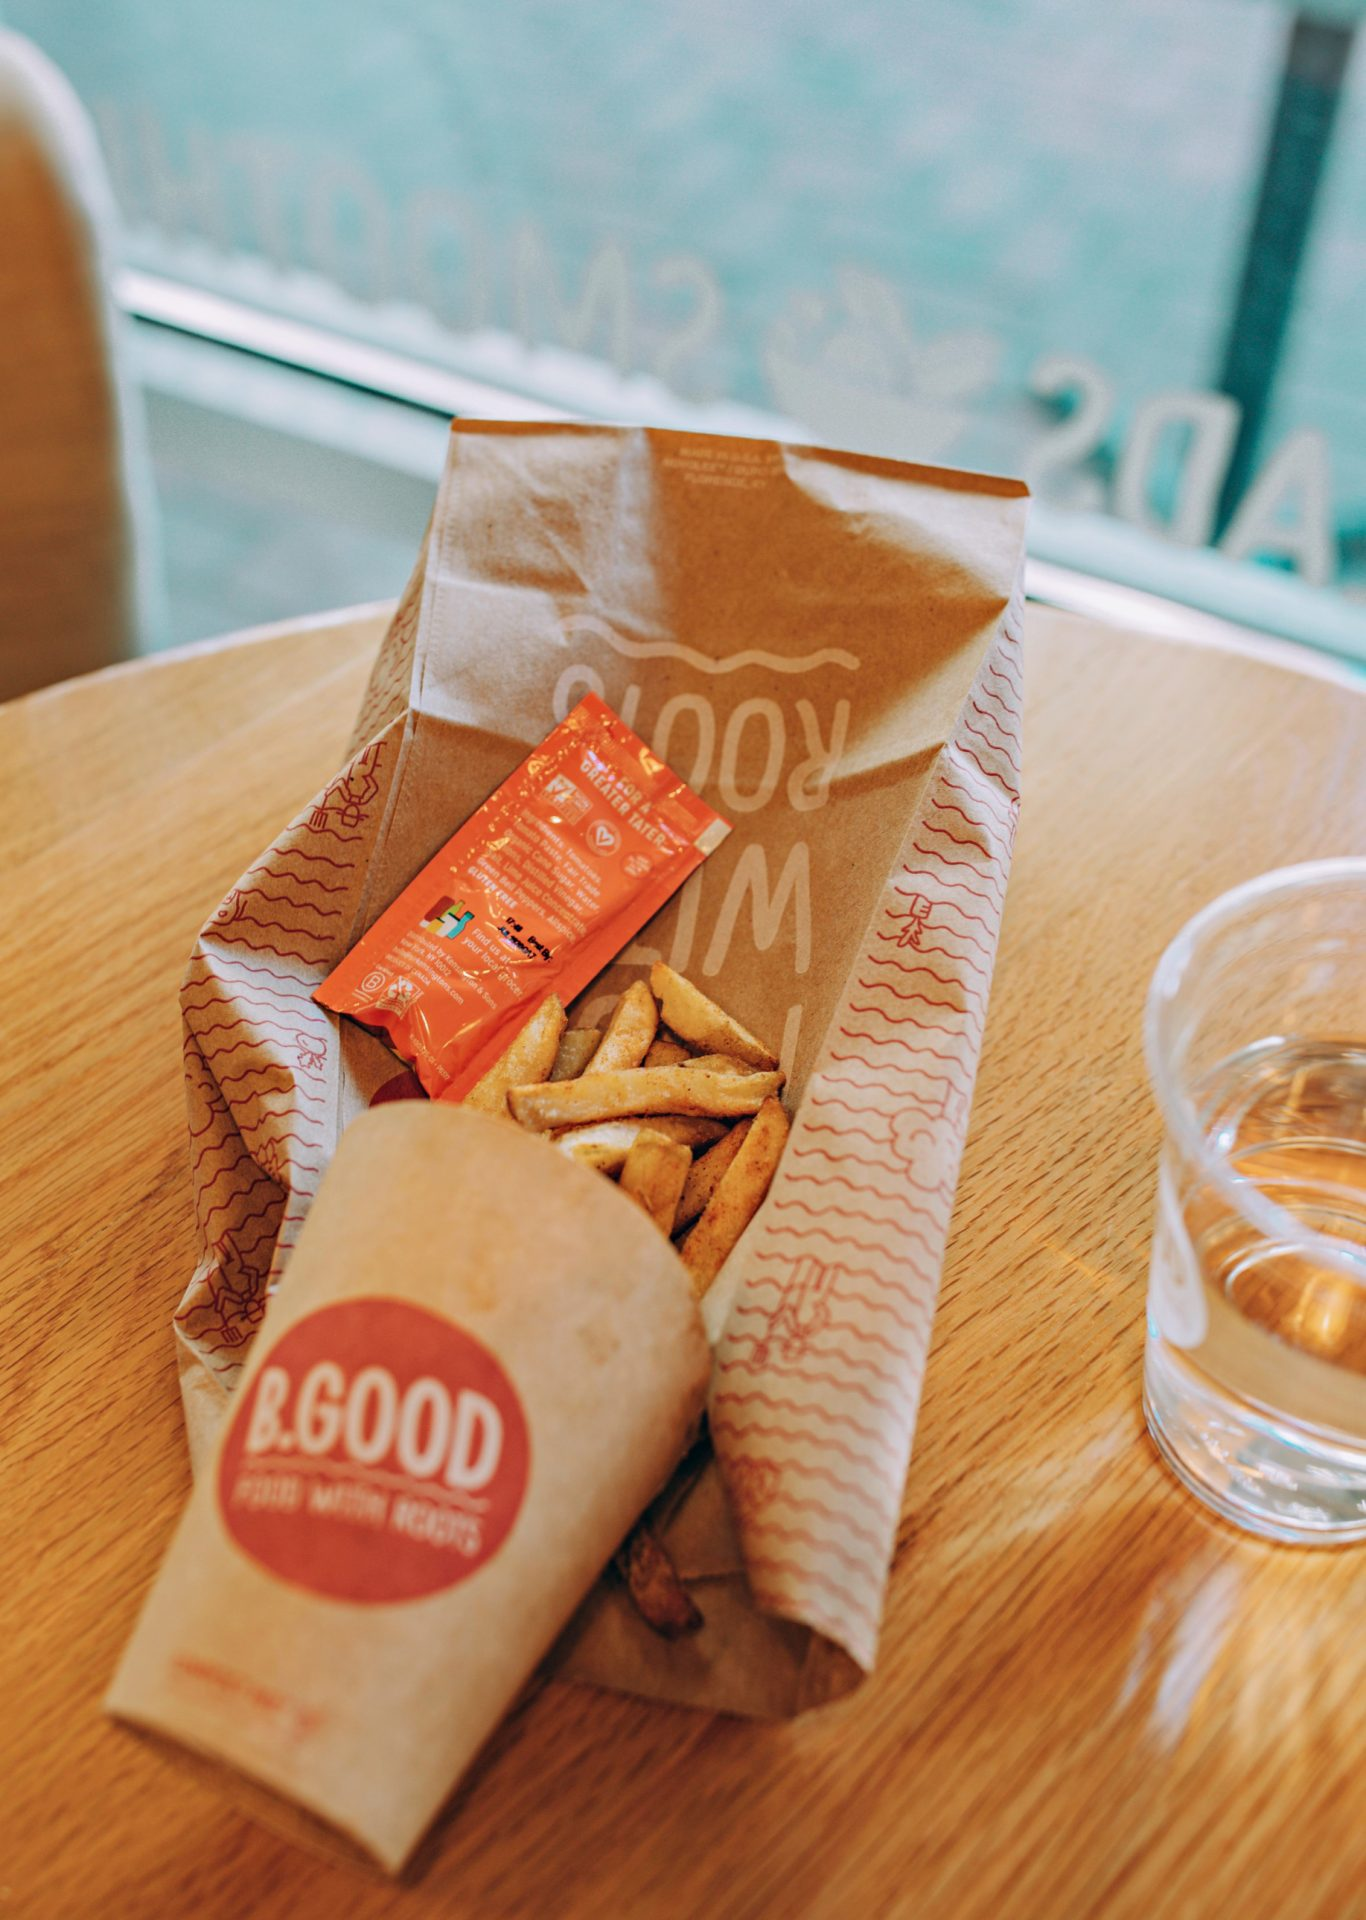 Charlotte uptown, be good, French fries , sparkling water, caribou, rx bar, vanilla almond,